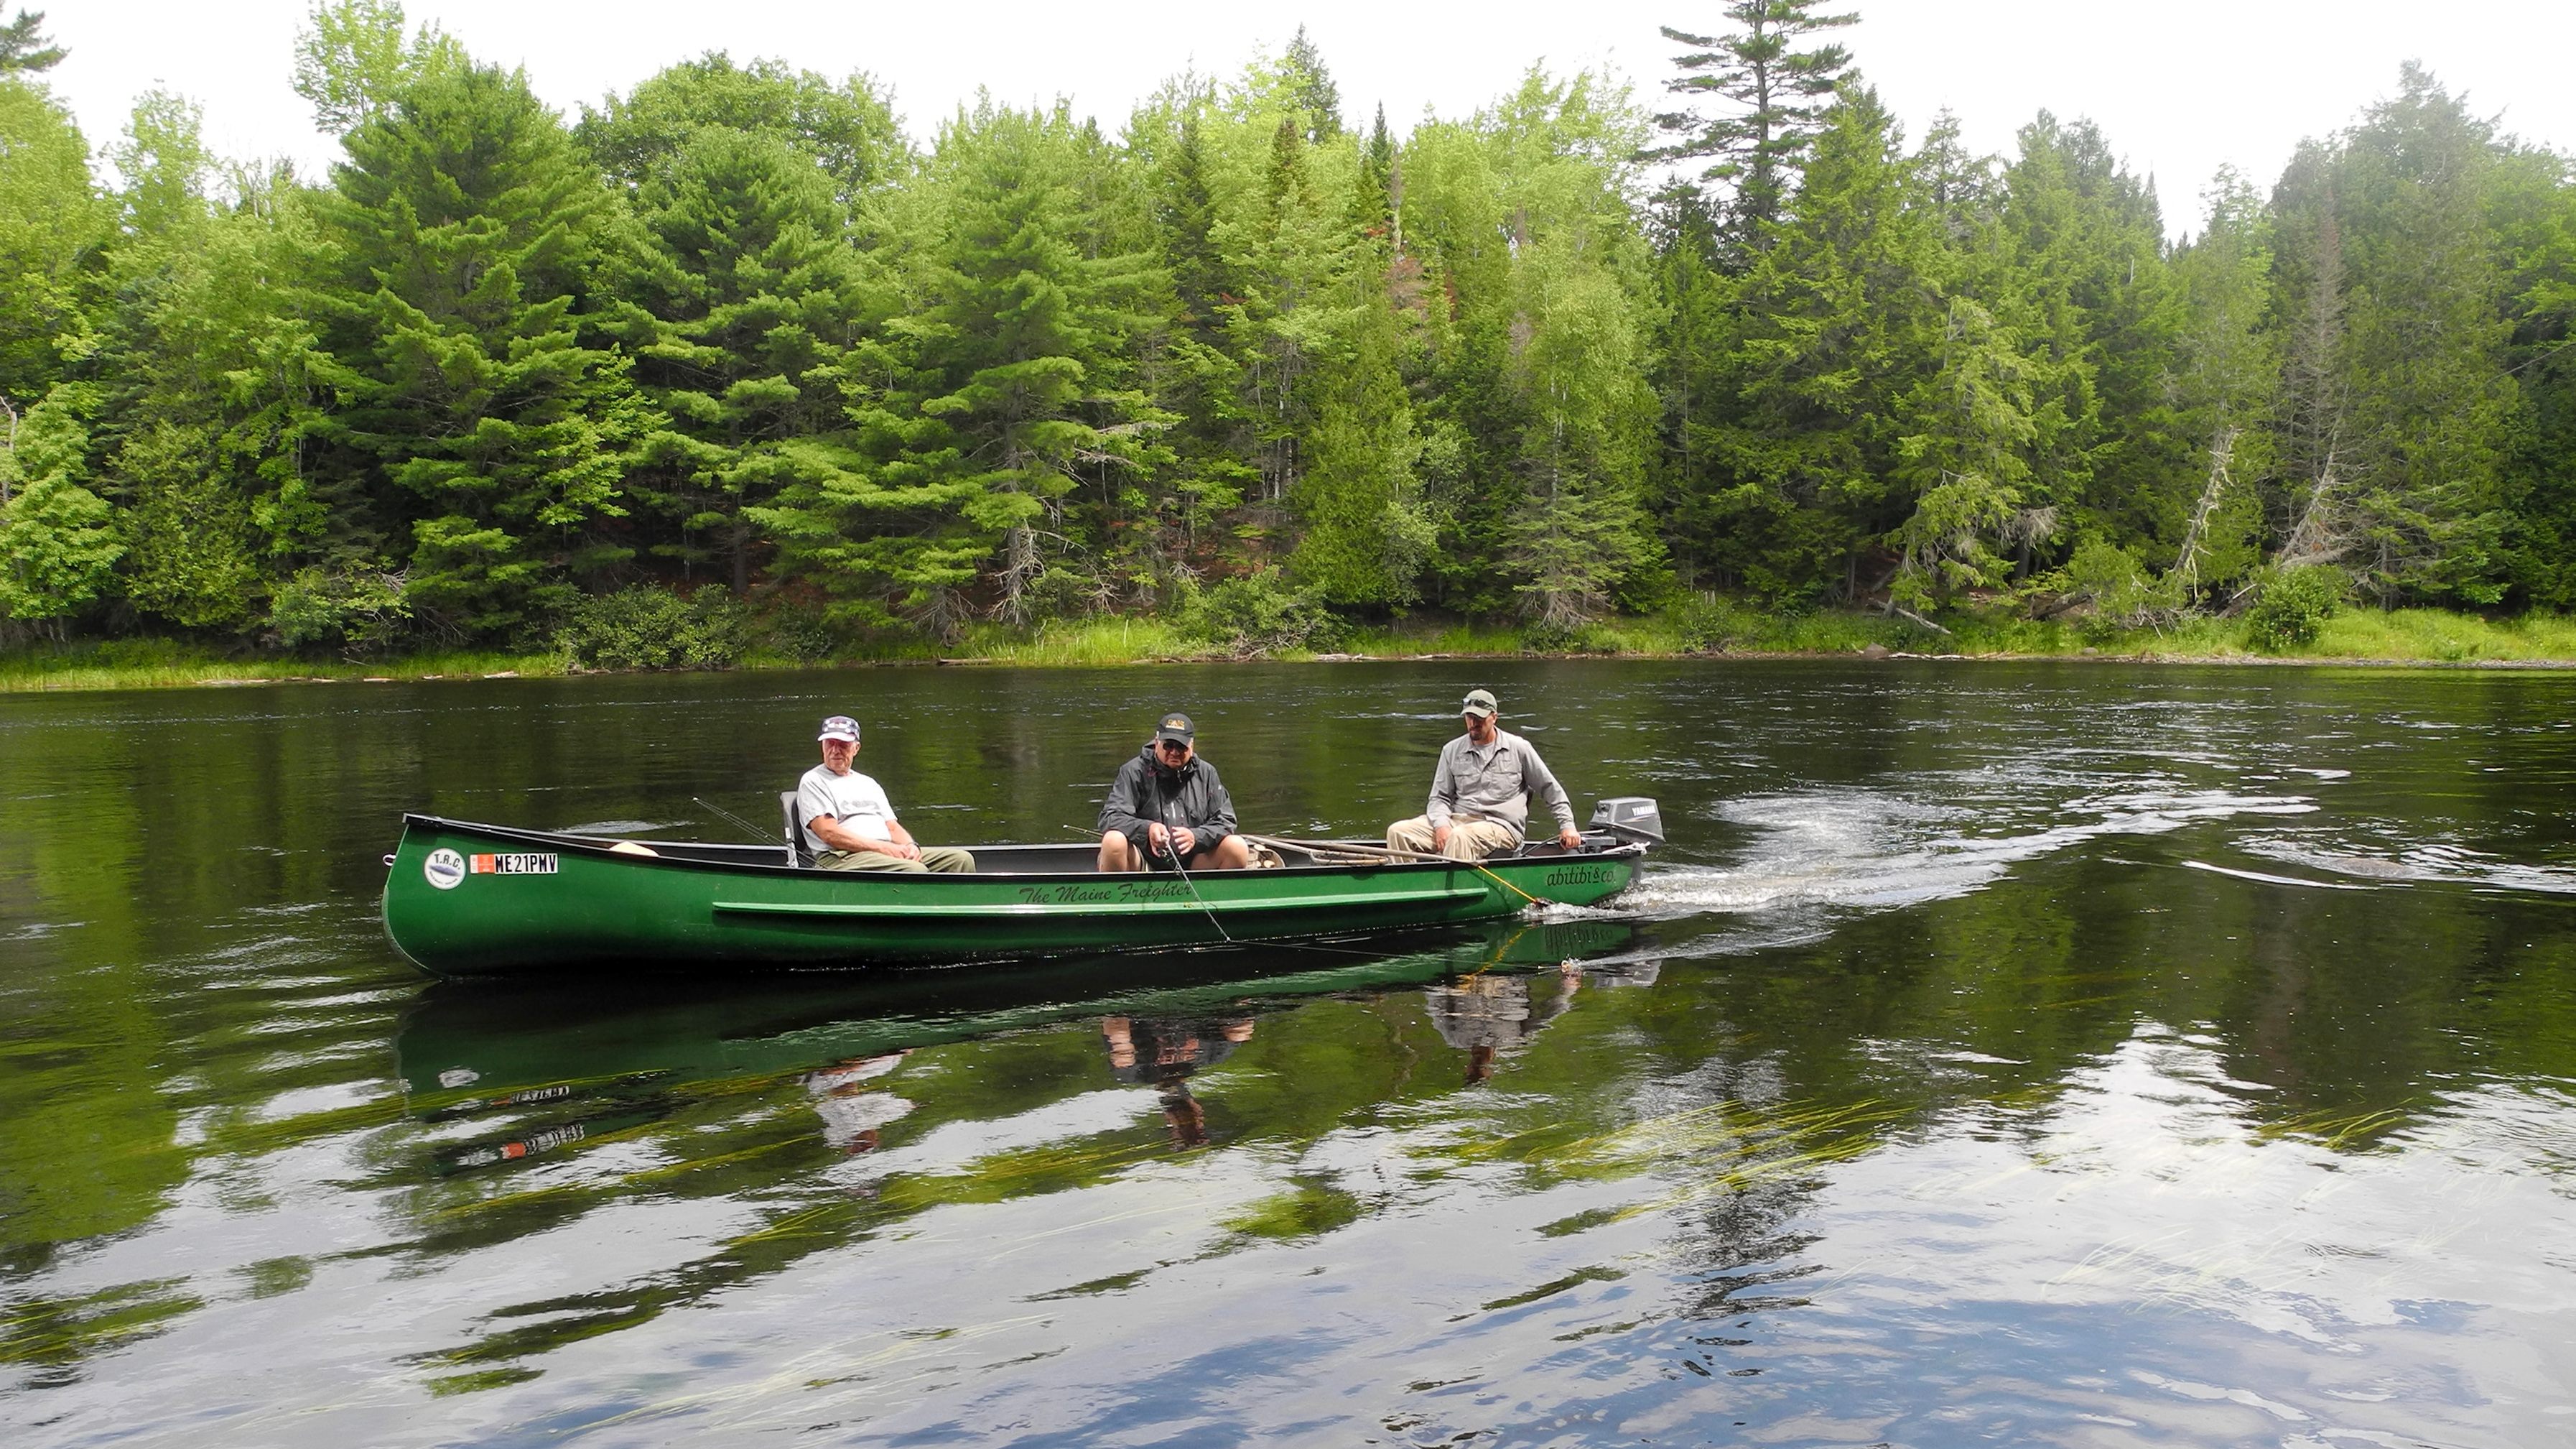 The pristine and tranquil St. Croix River forming the border between Maine and New Brunswick, Canada, teems with smallmouth bass, largemouth bass, pickerel, chub, and other fish. Bald eagle sightings are common.